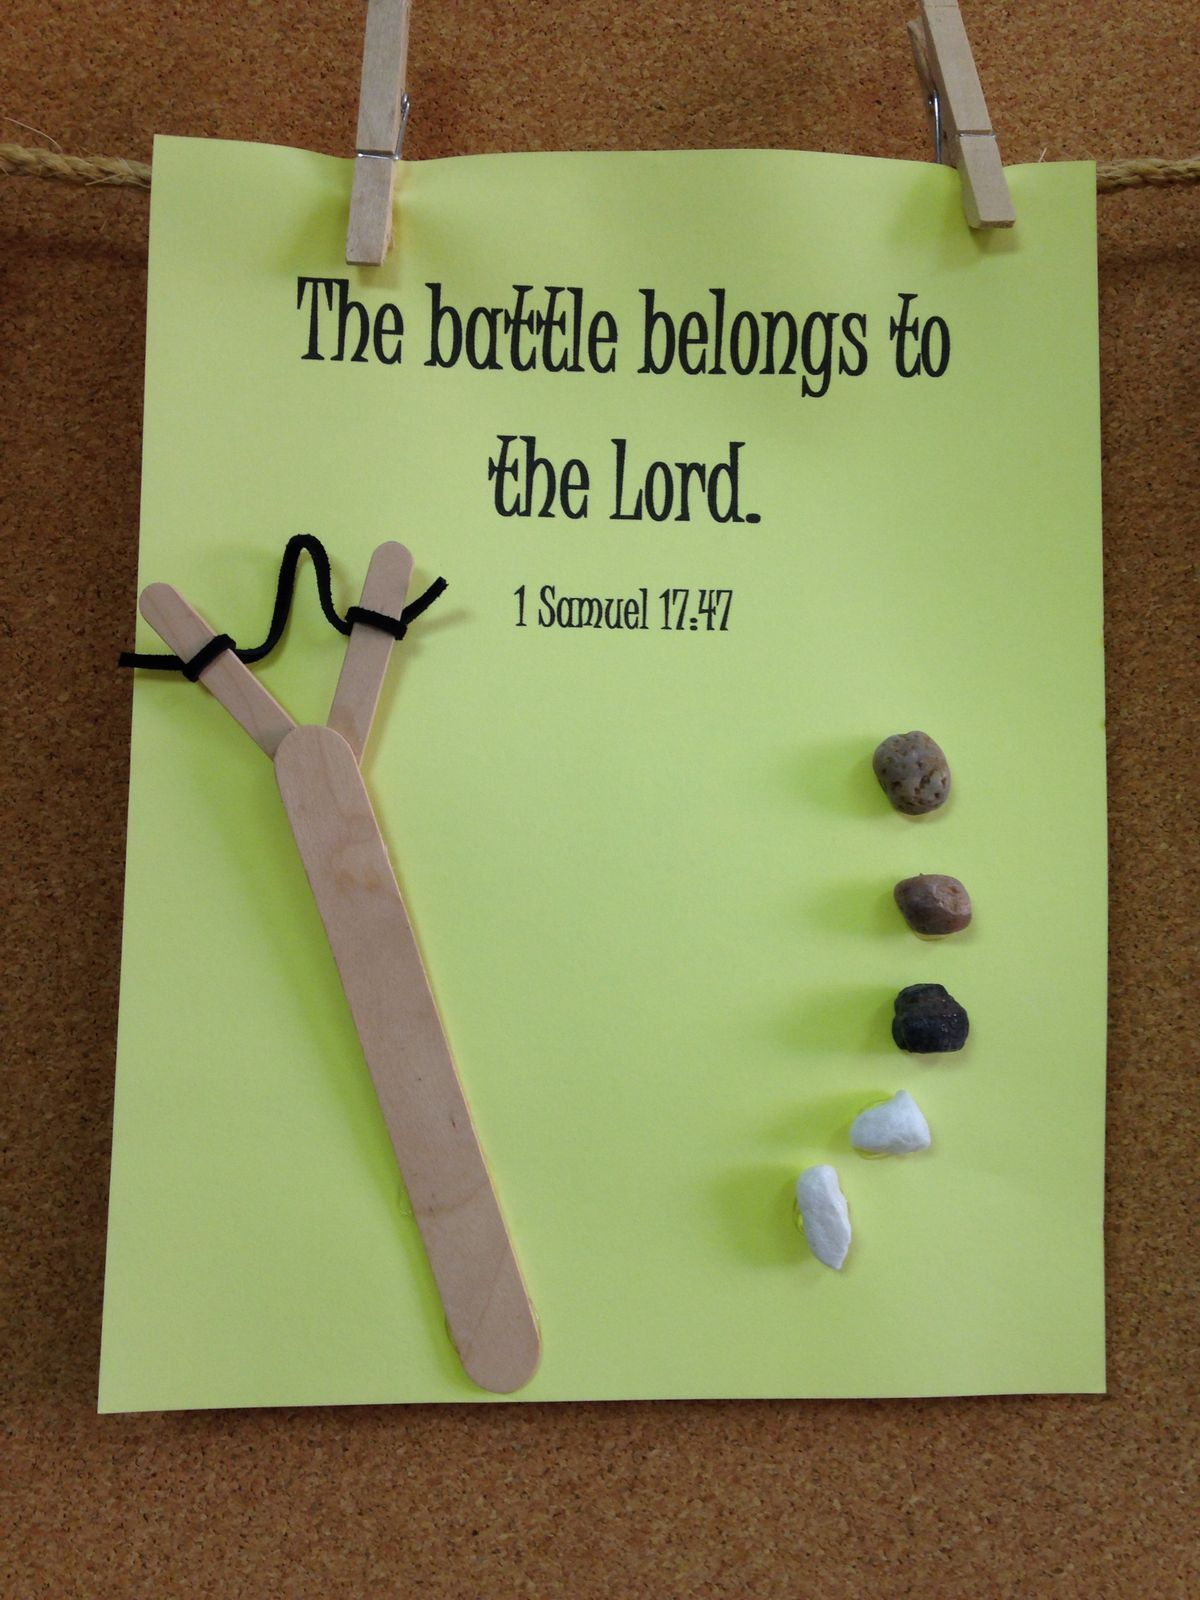 Crafts for sunday school class - 11 Samuel Was Anointed Fought Goliath Simple David Goliath Craft With Small Stones Hot Glue Popsicle Sticks Construction Paper Leather Jewelry